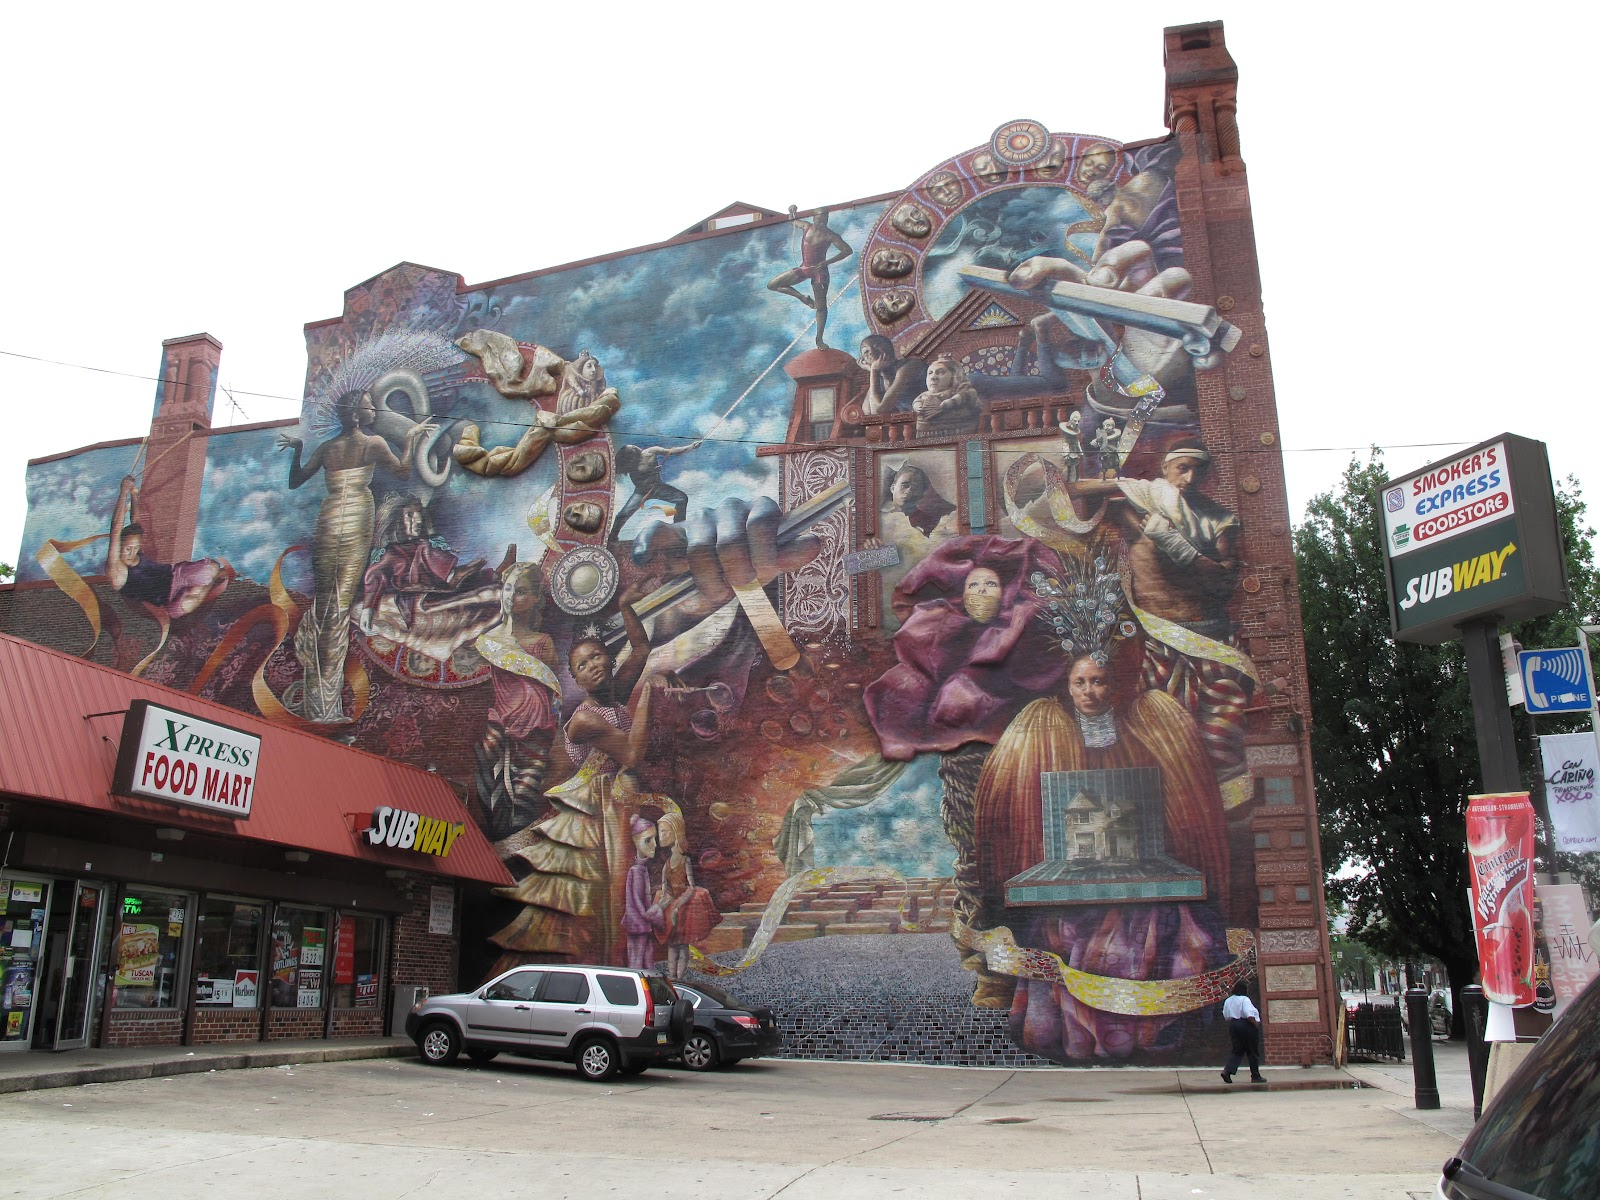 wonderful-of-philadelphia-mural-arts-world-graffiti-murals-art.jpg